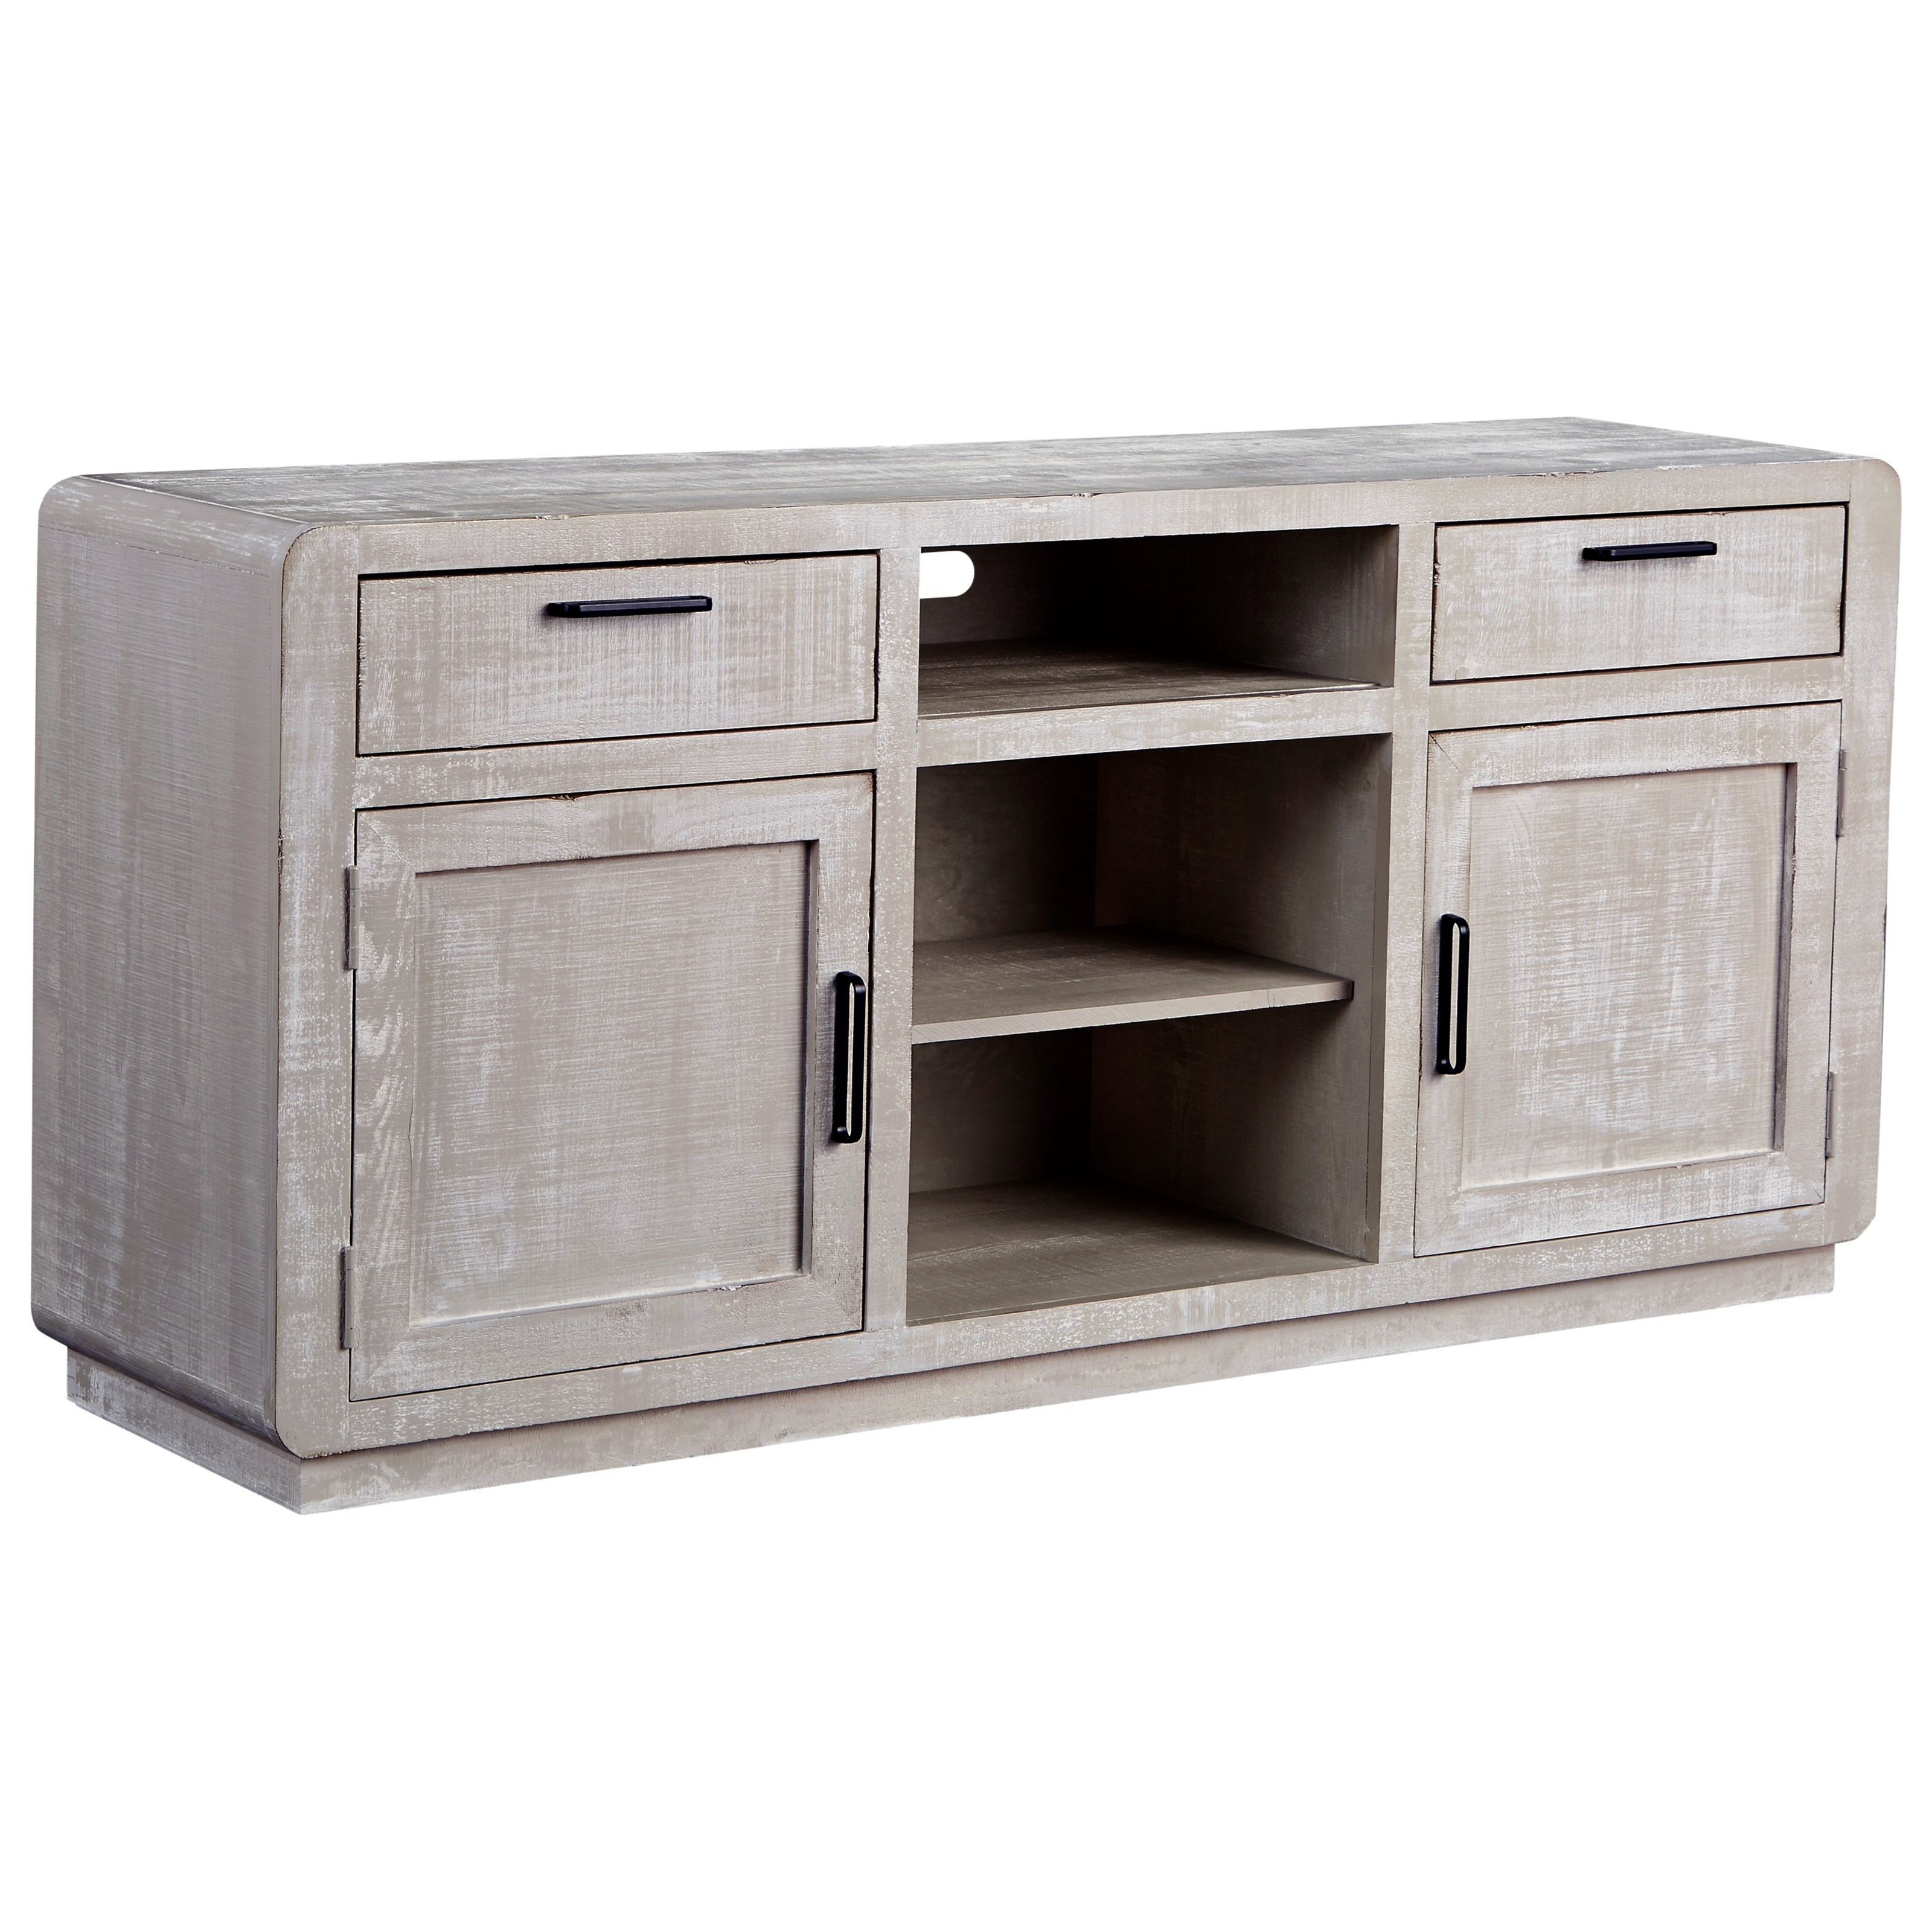 "Allure 64"" Console by Progressive Furniture at Simply Home by Lindy's"